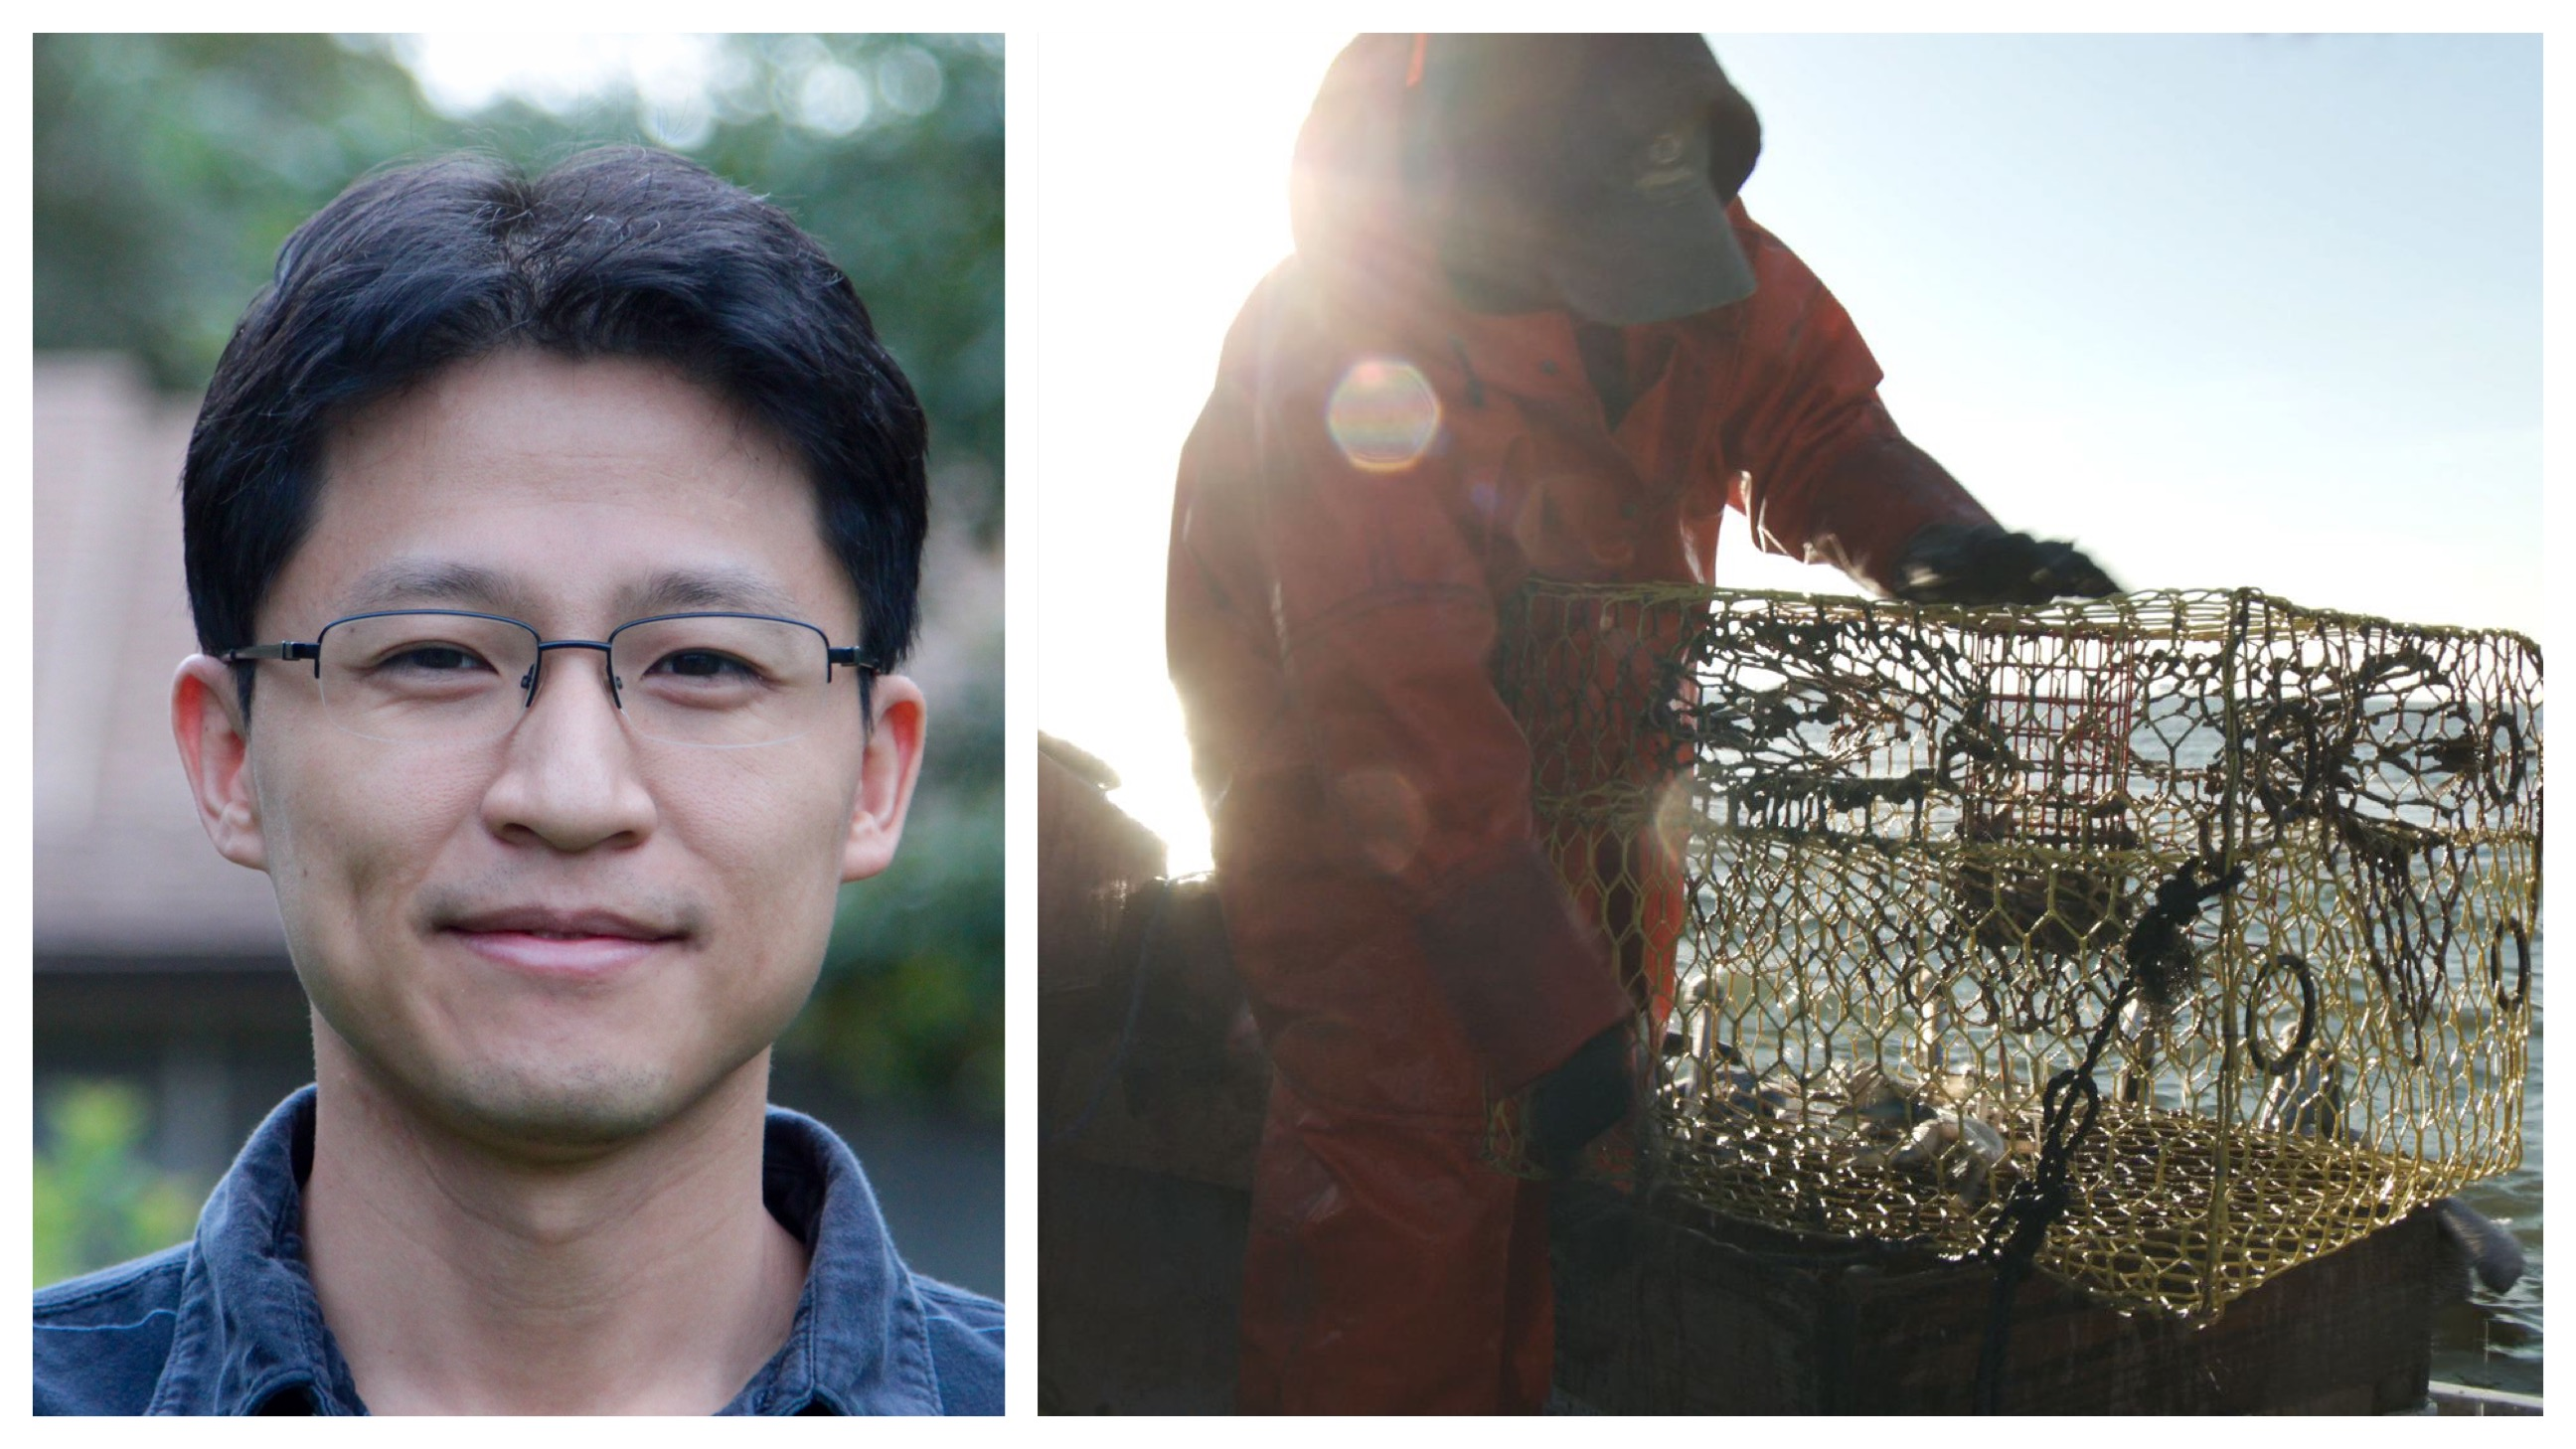 An East Asian man wearing glasses poses for the camera on the left; on the right, an image of a person with a crabbing net hauling in crabs.